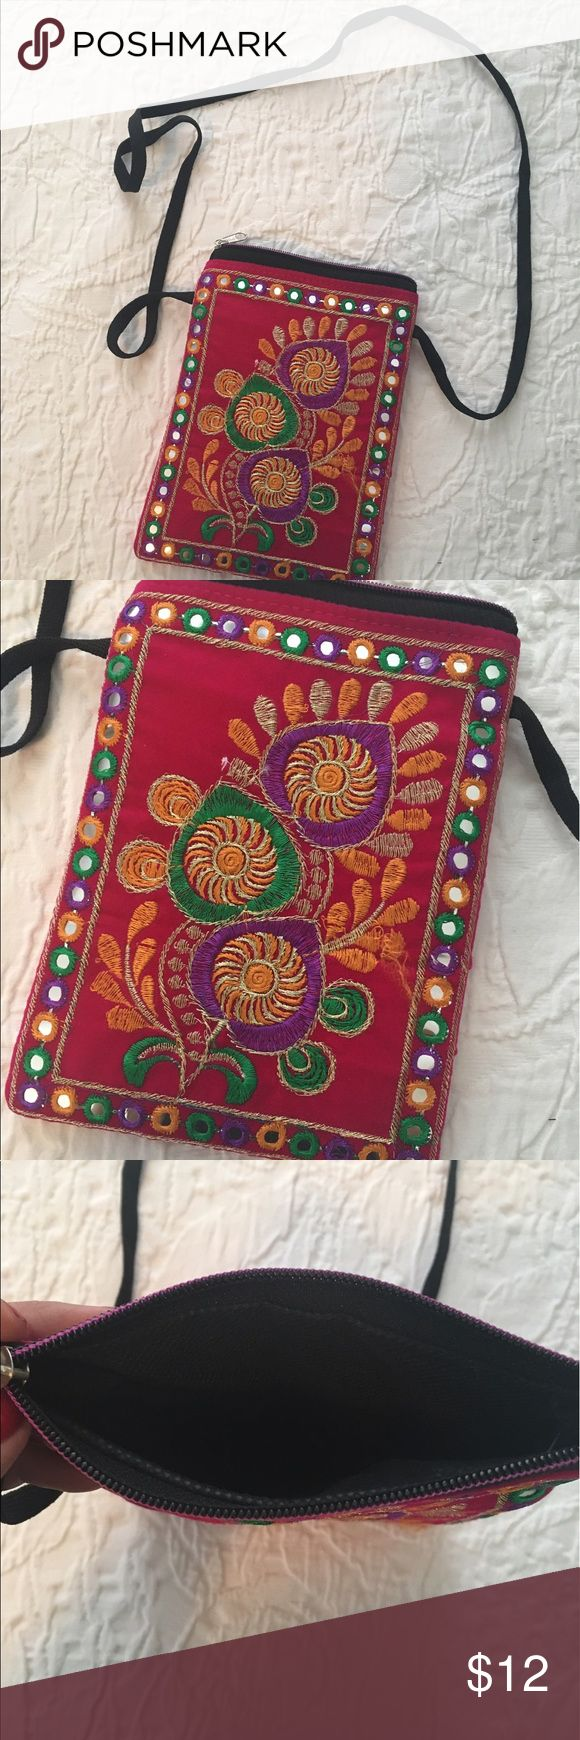 Authentic Indian Side Purse Authentic Indian Side Purse. Never used! Bags Crossbody Bags